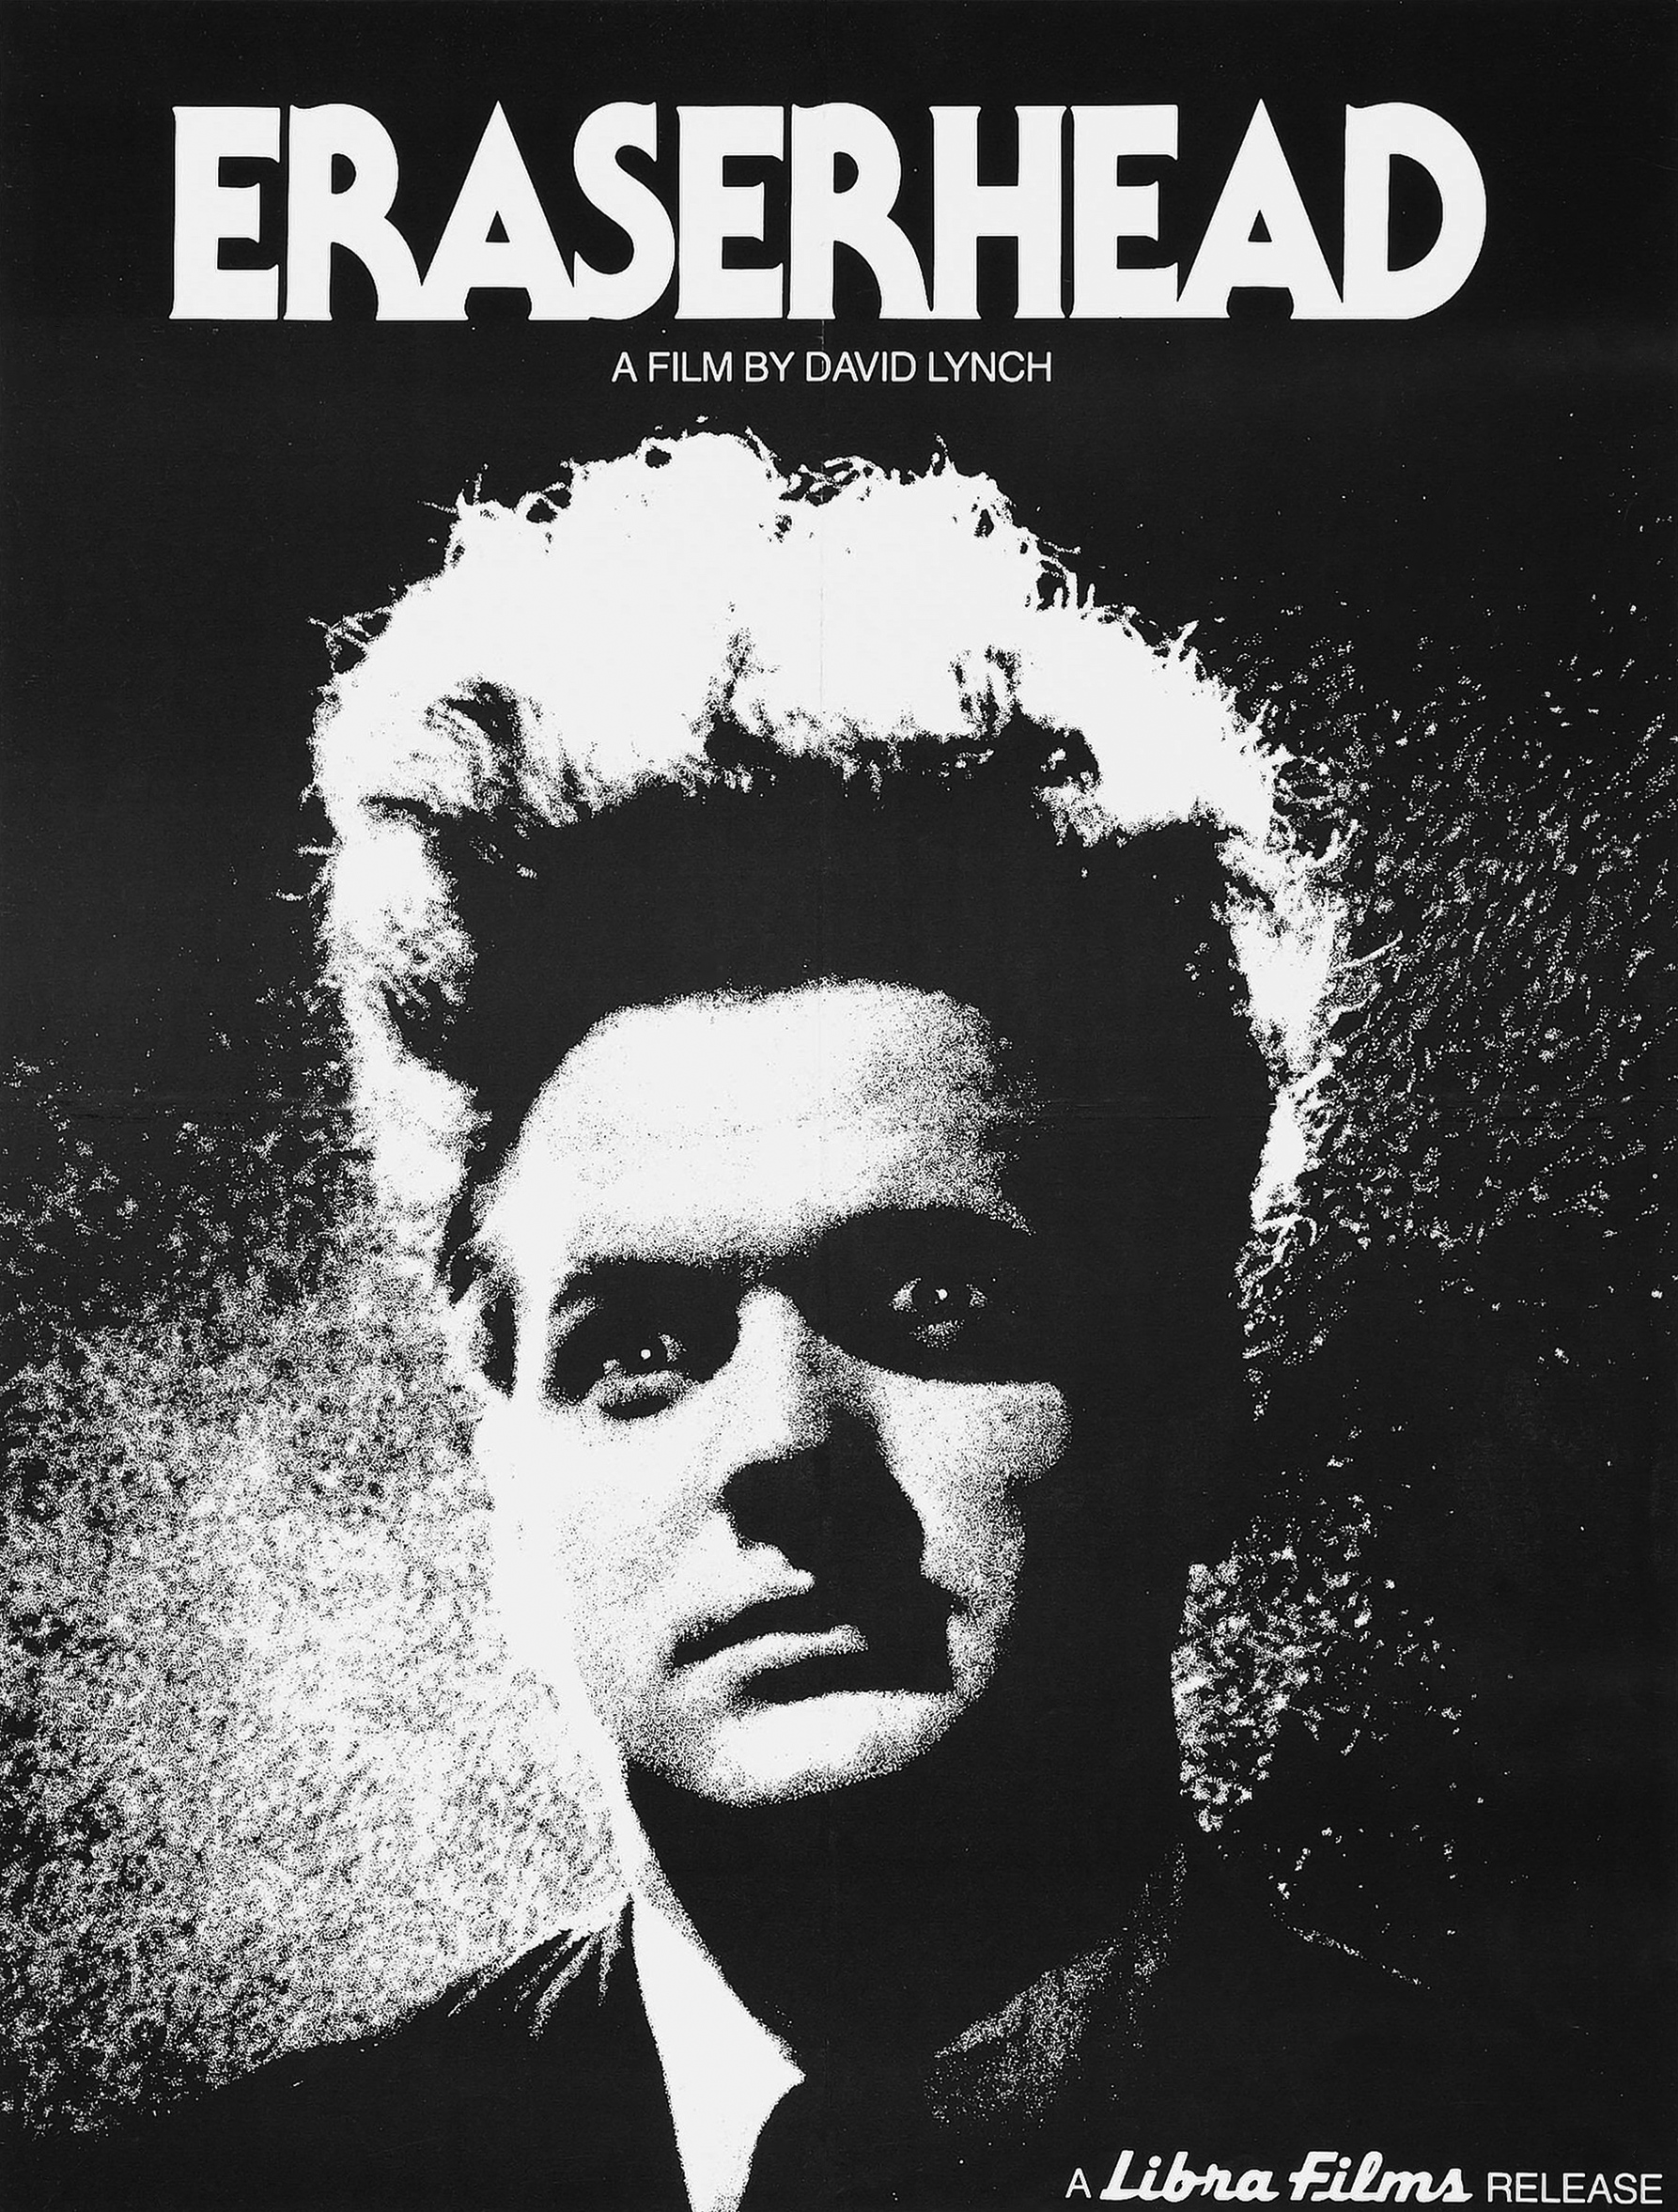 Eraserhead (1977) by David Lynch